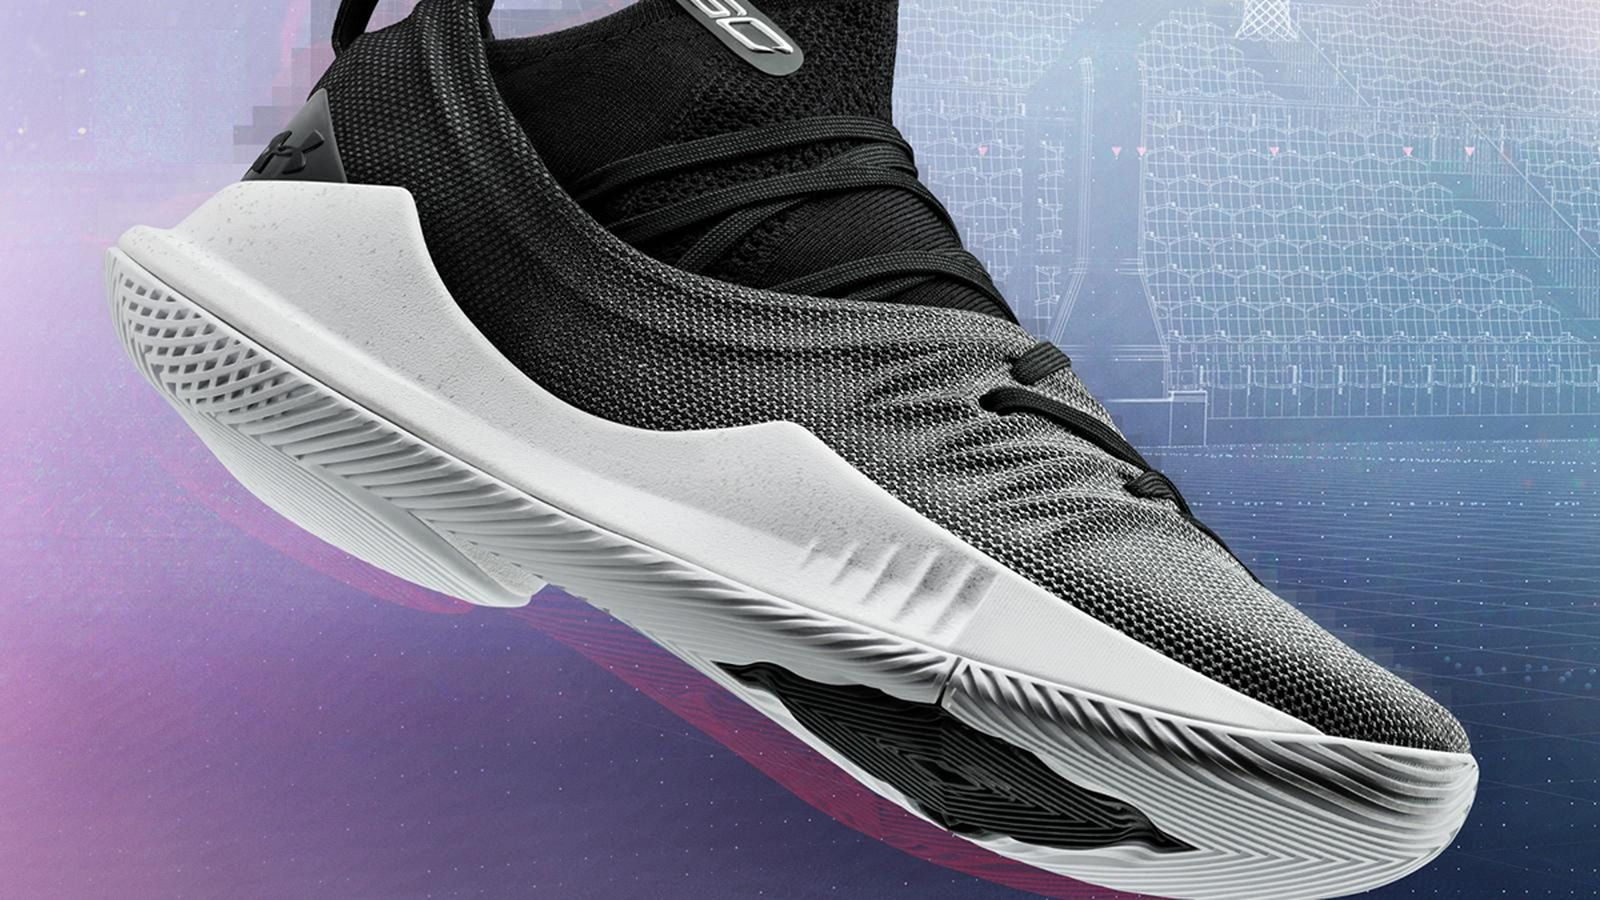 under armour curry 5 black white release date price Stephen Curry